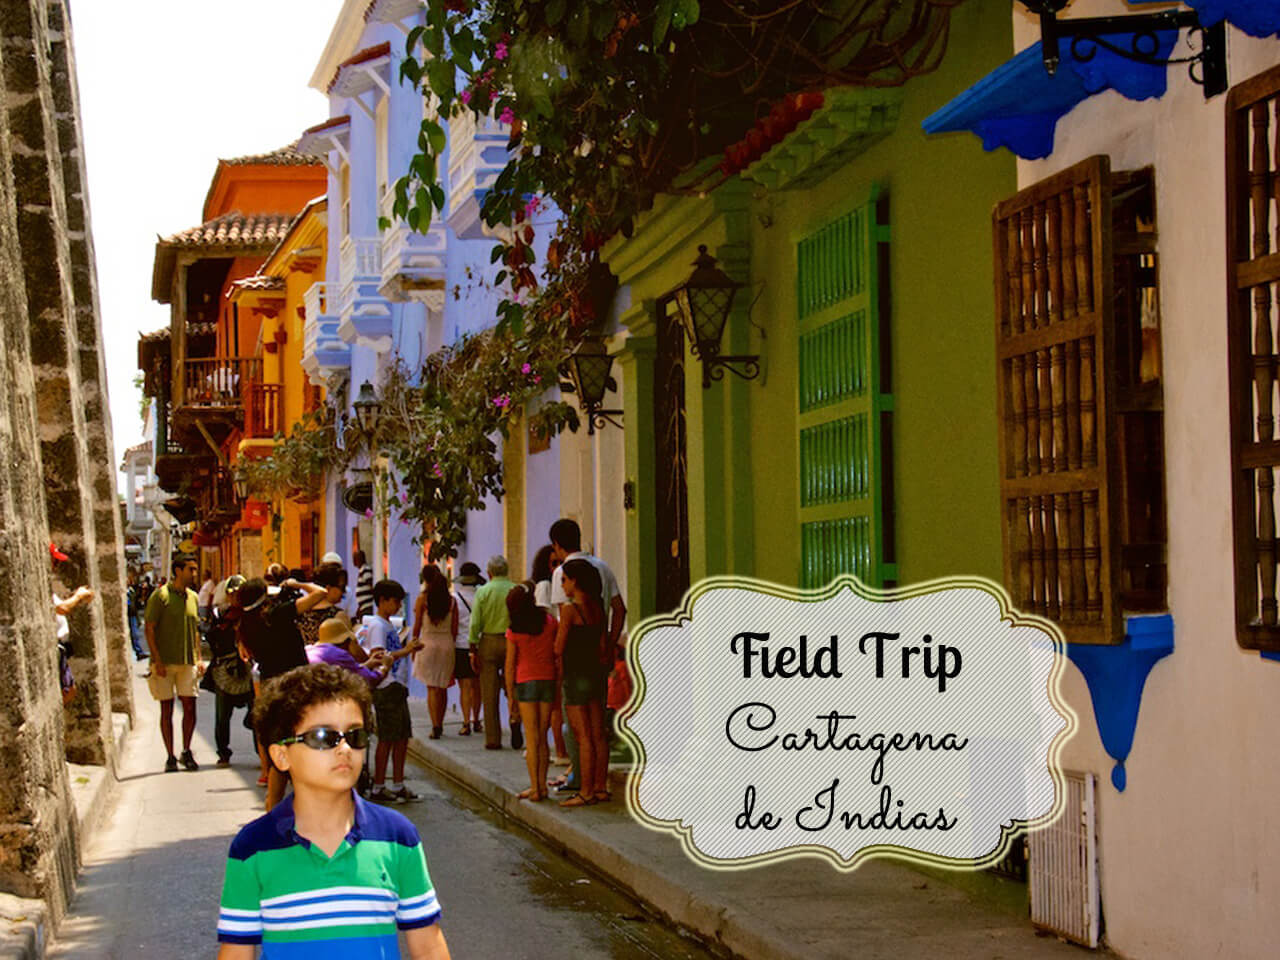 field trip to Cartagena de Indias, Colombia